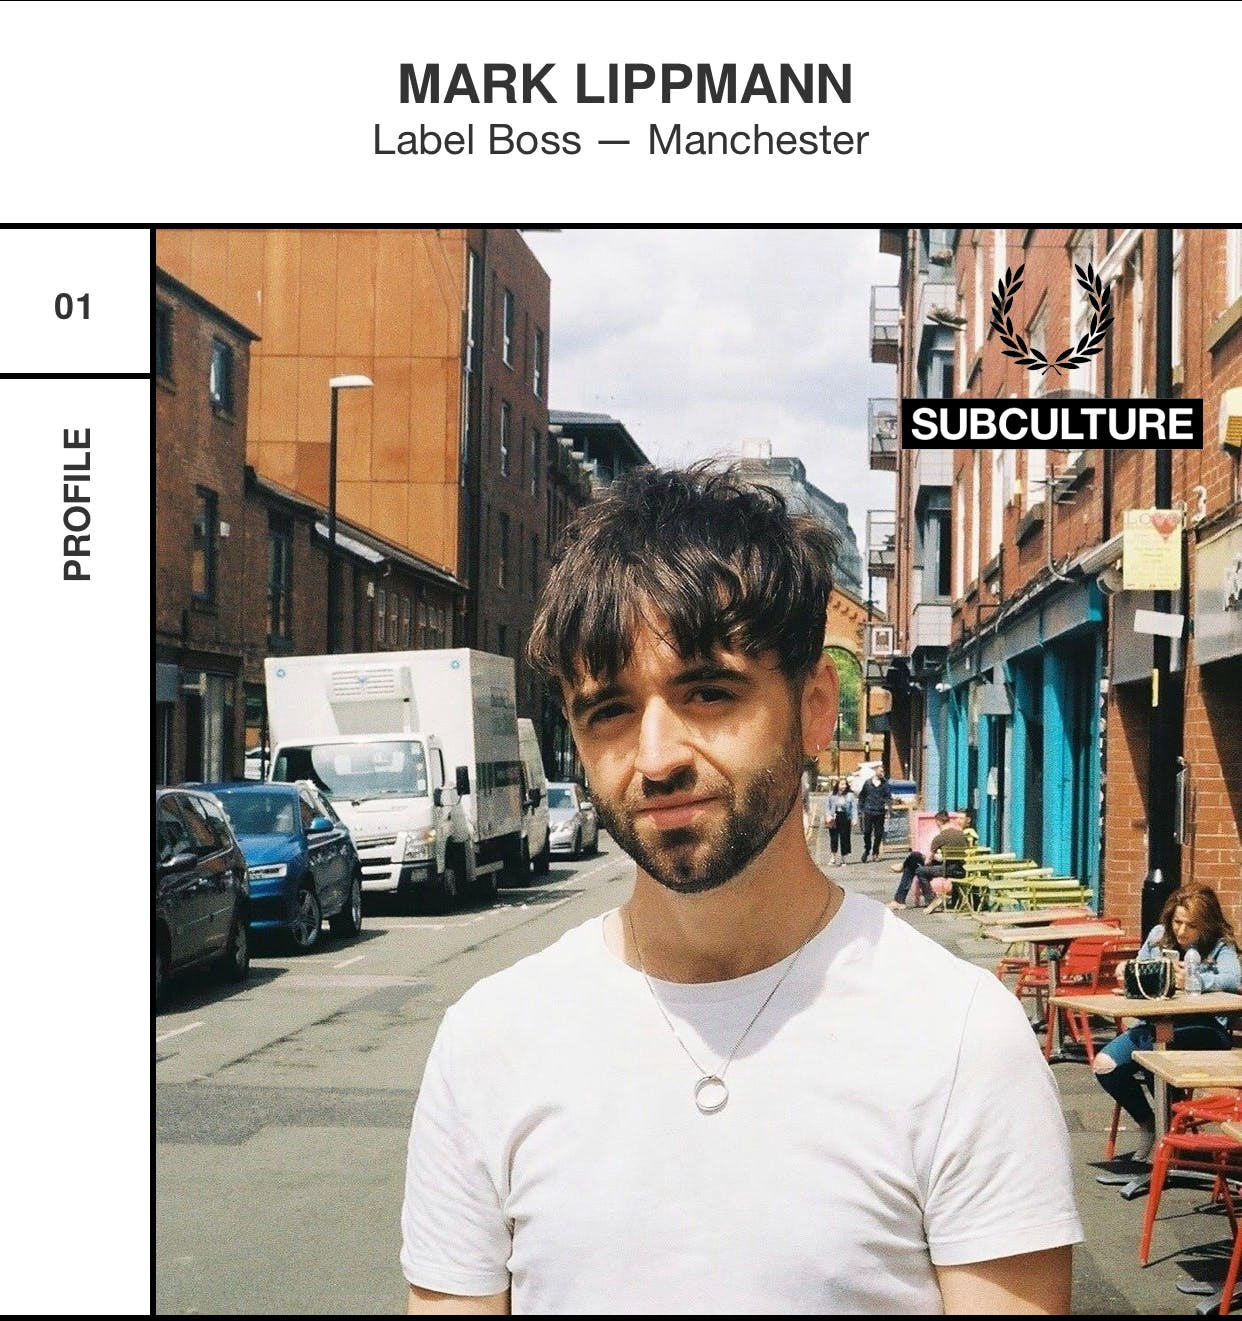 Fred Perry Interview with CEO Mark Lippmann